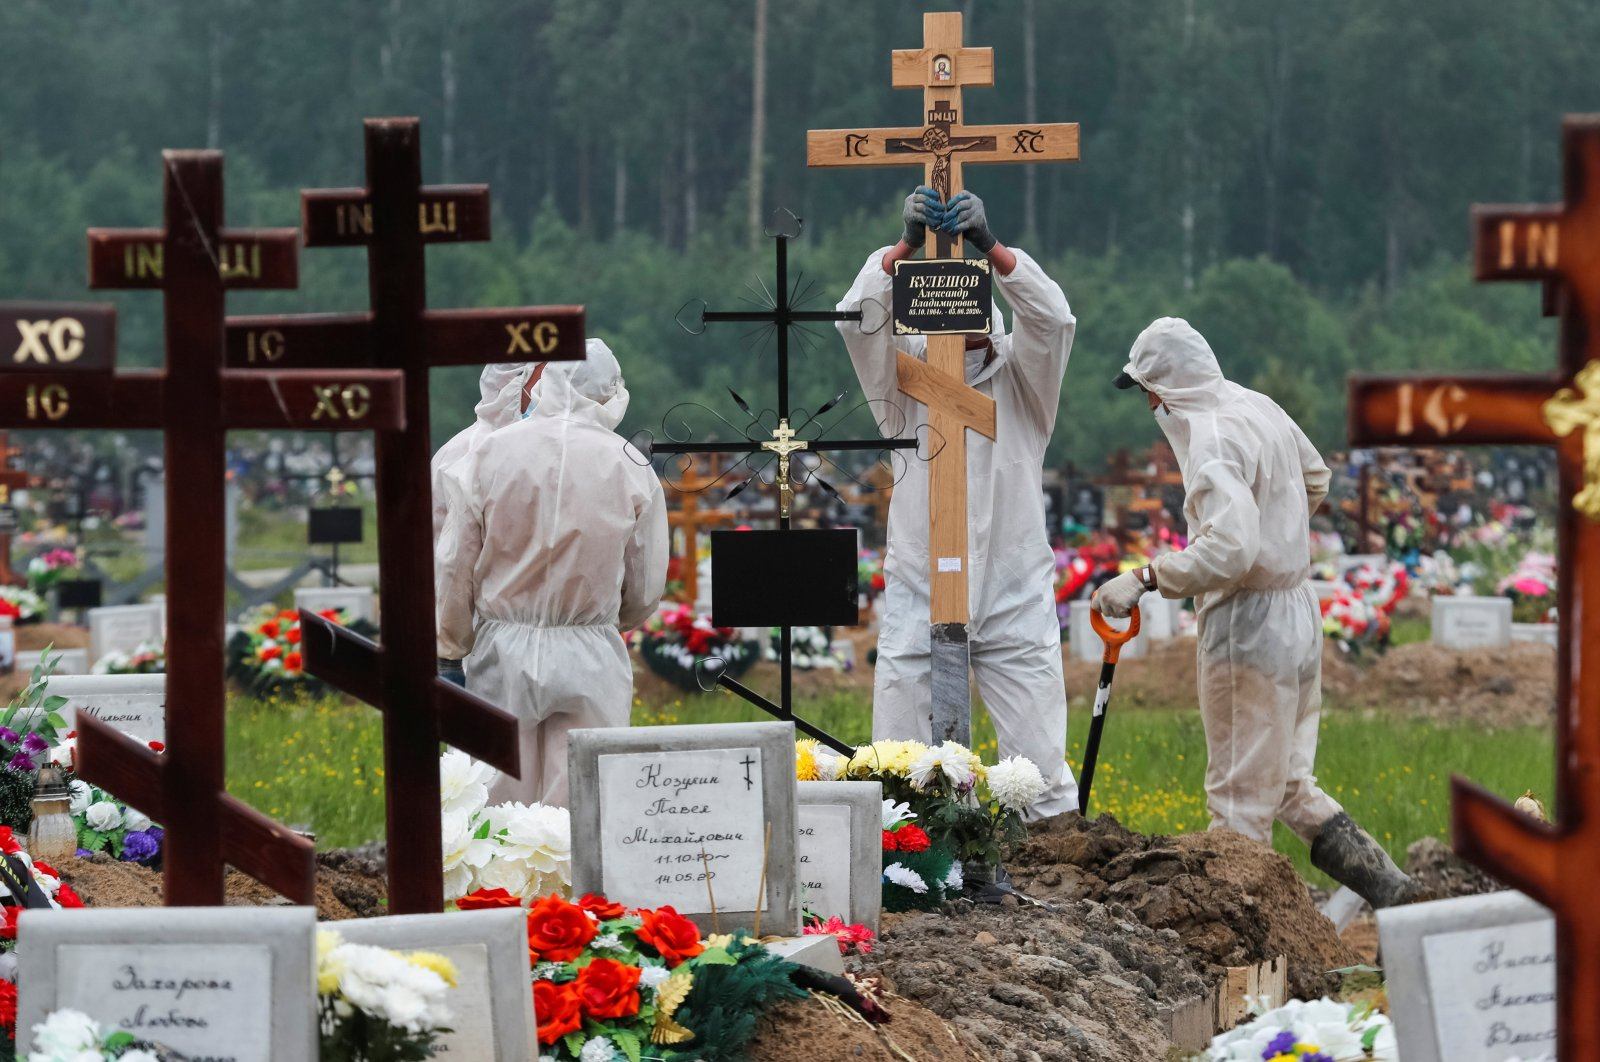 Grave diggers wearing personal protective equipment (PPE) bury a person, who presumably died of the coronavirus disease (COVID-19) in the special purpose section of a graveyard on the outskirts of Saint Petersburg, Russia on June 10, 2020. (Reuters Photo)